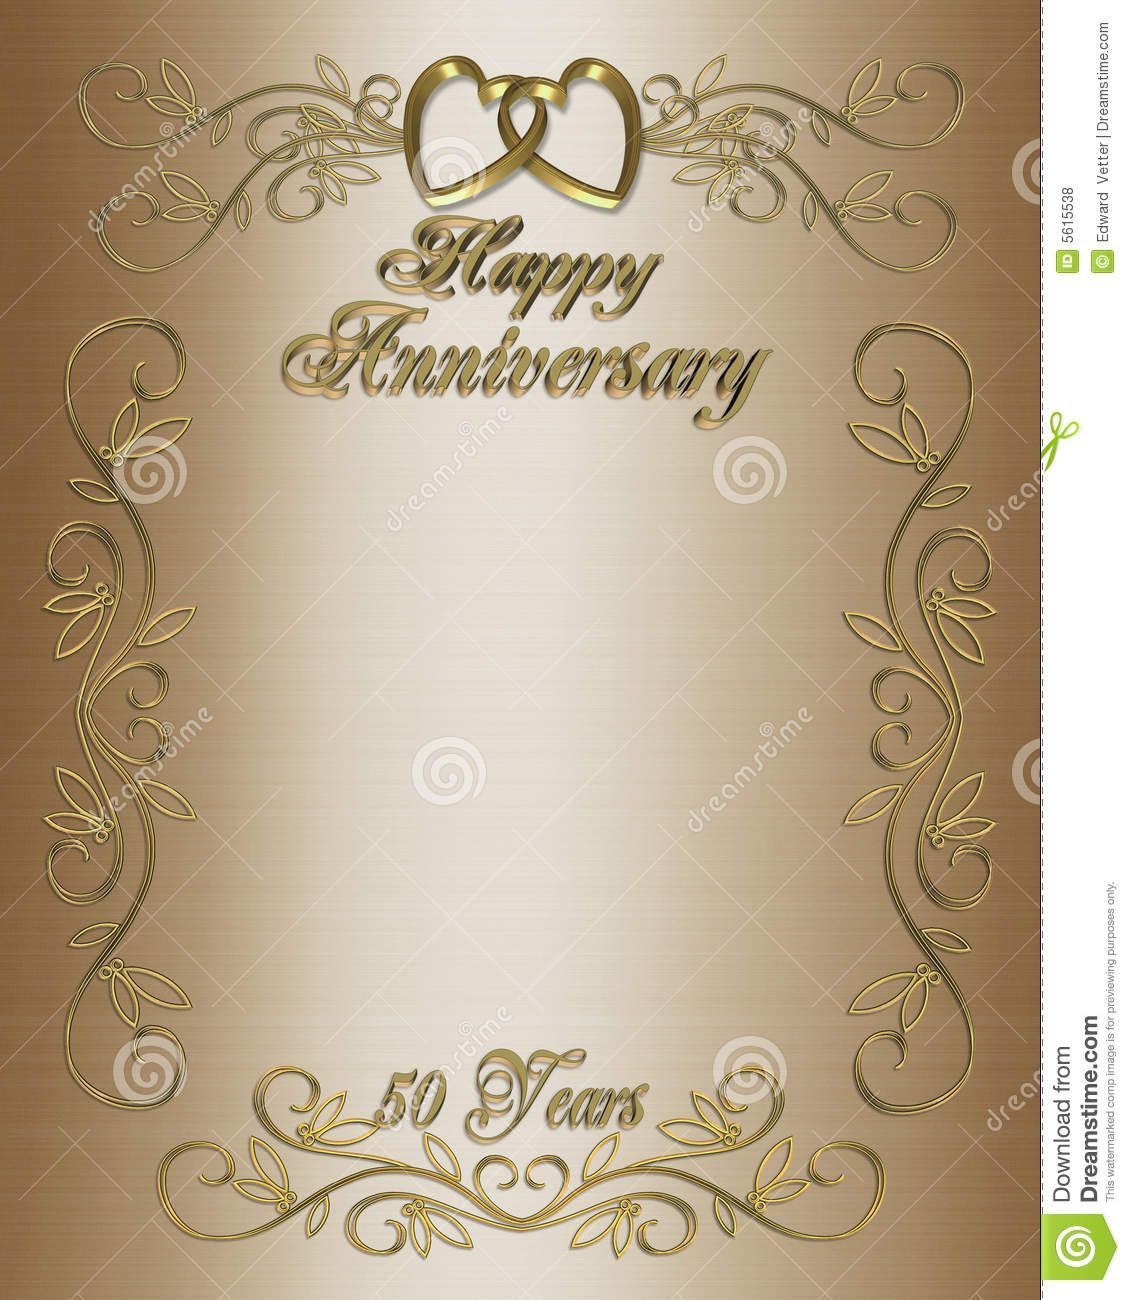 007 Amazing 50th Anniversary Party Invitation Template Picture  Templates Golden Wedding Uk Microsoft Word FreeFull